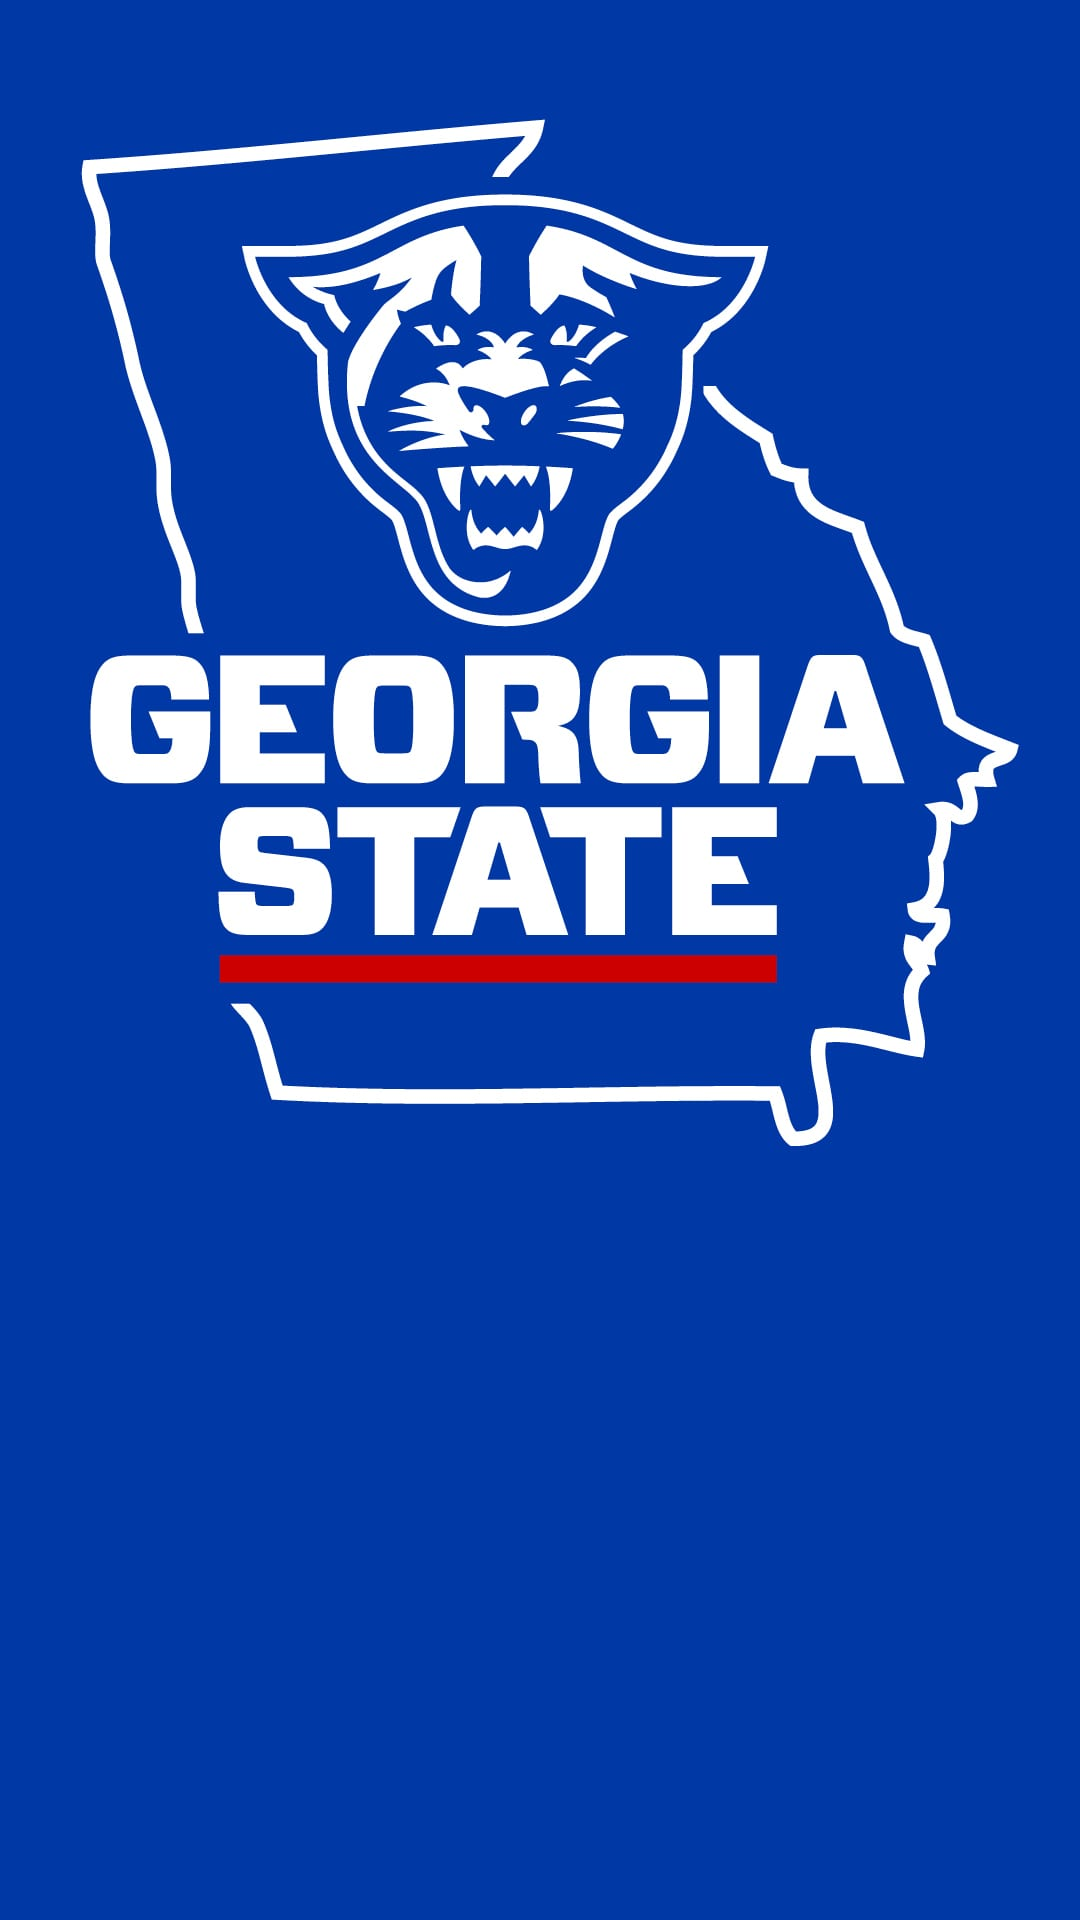 Vertical Image with Athletic logo on state of Georgia outline